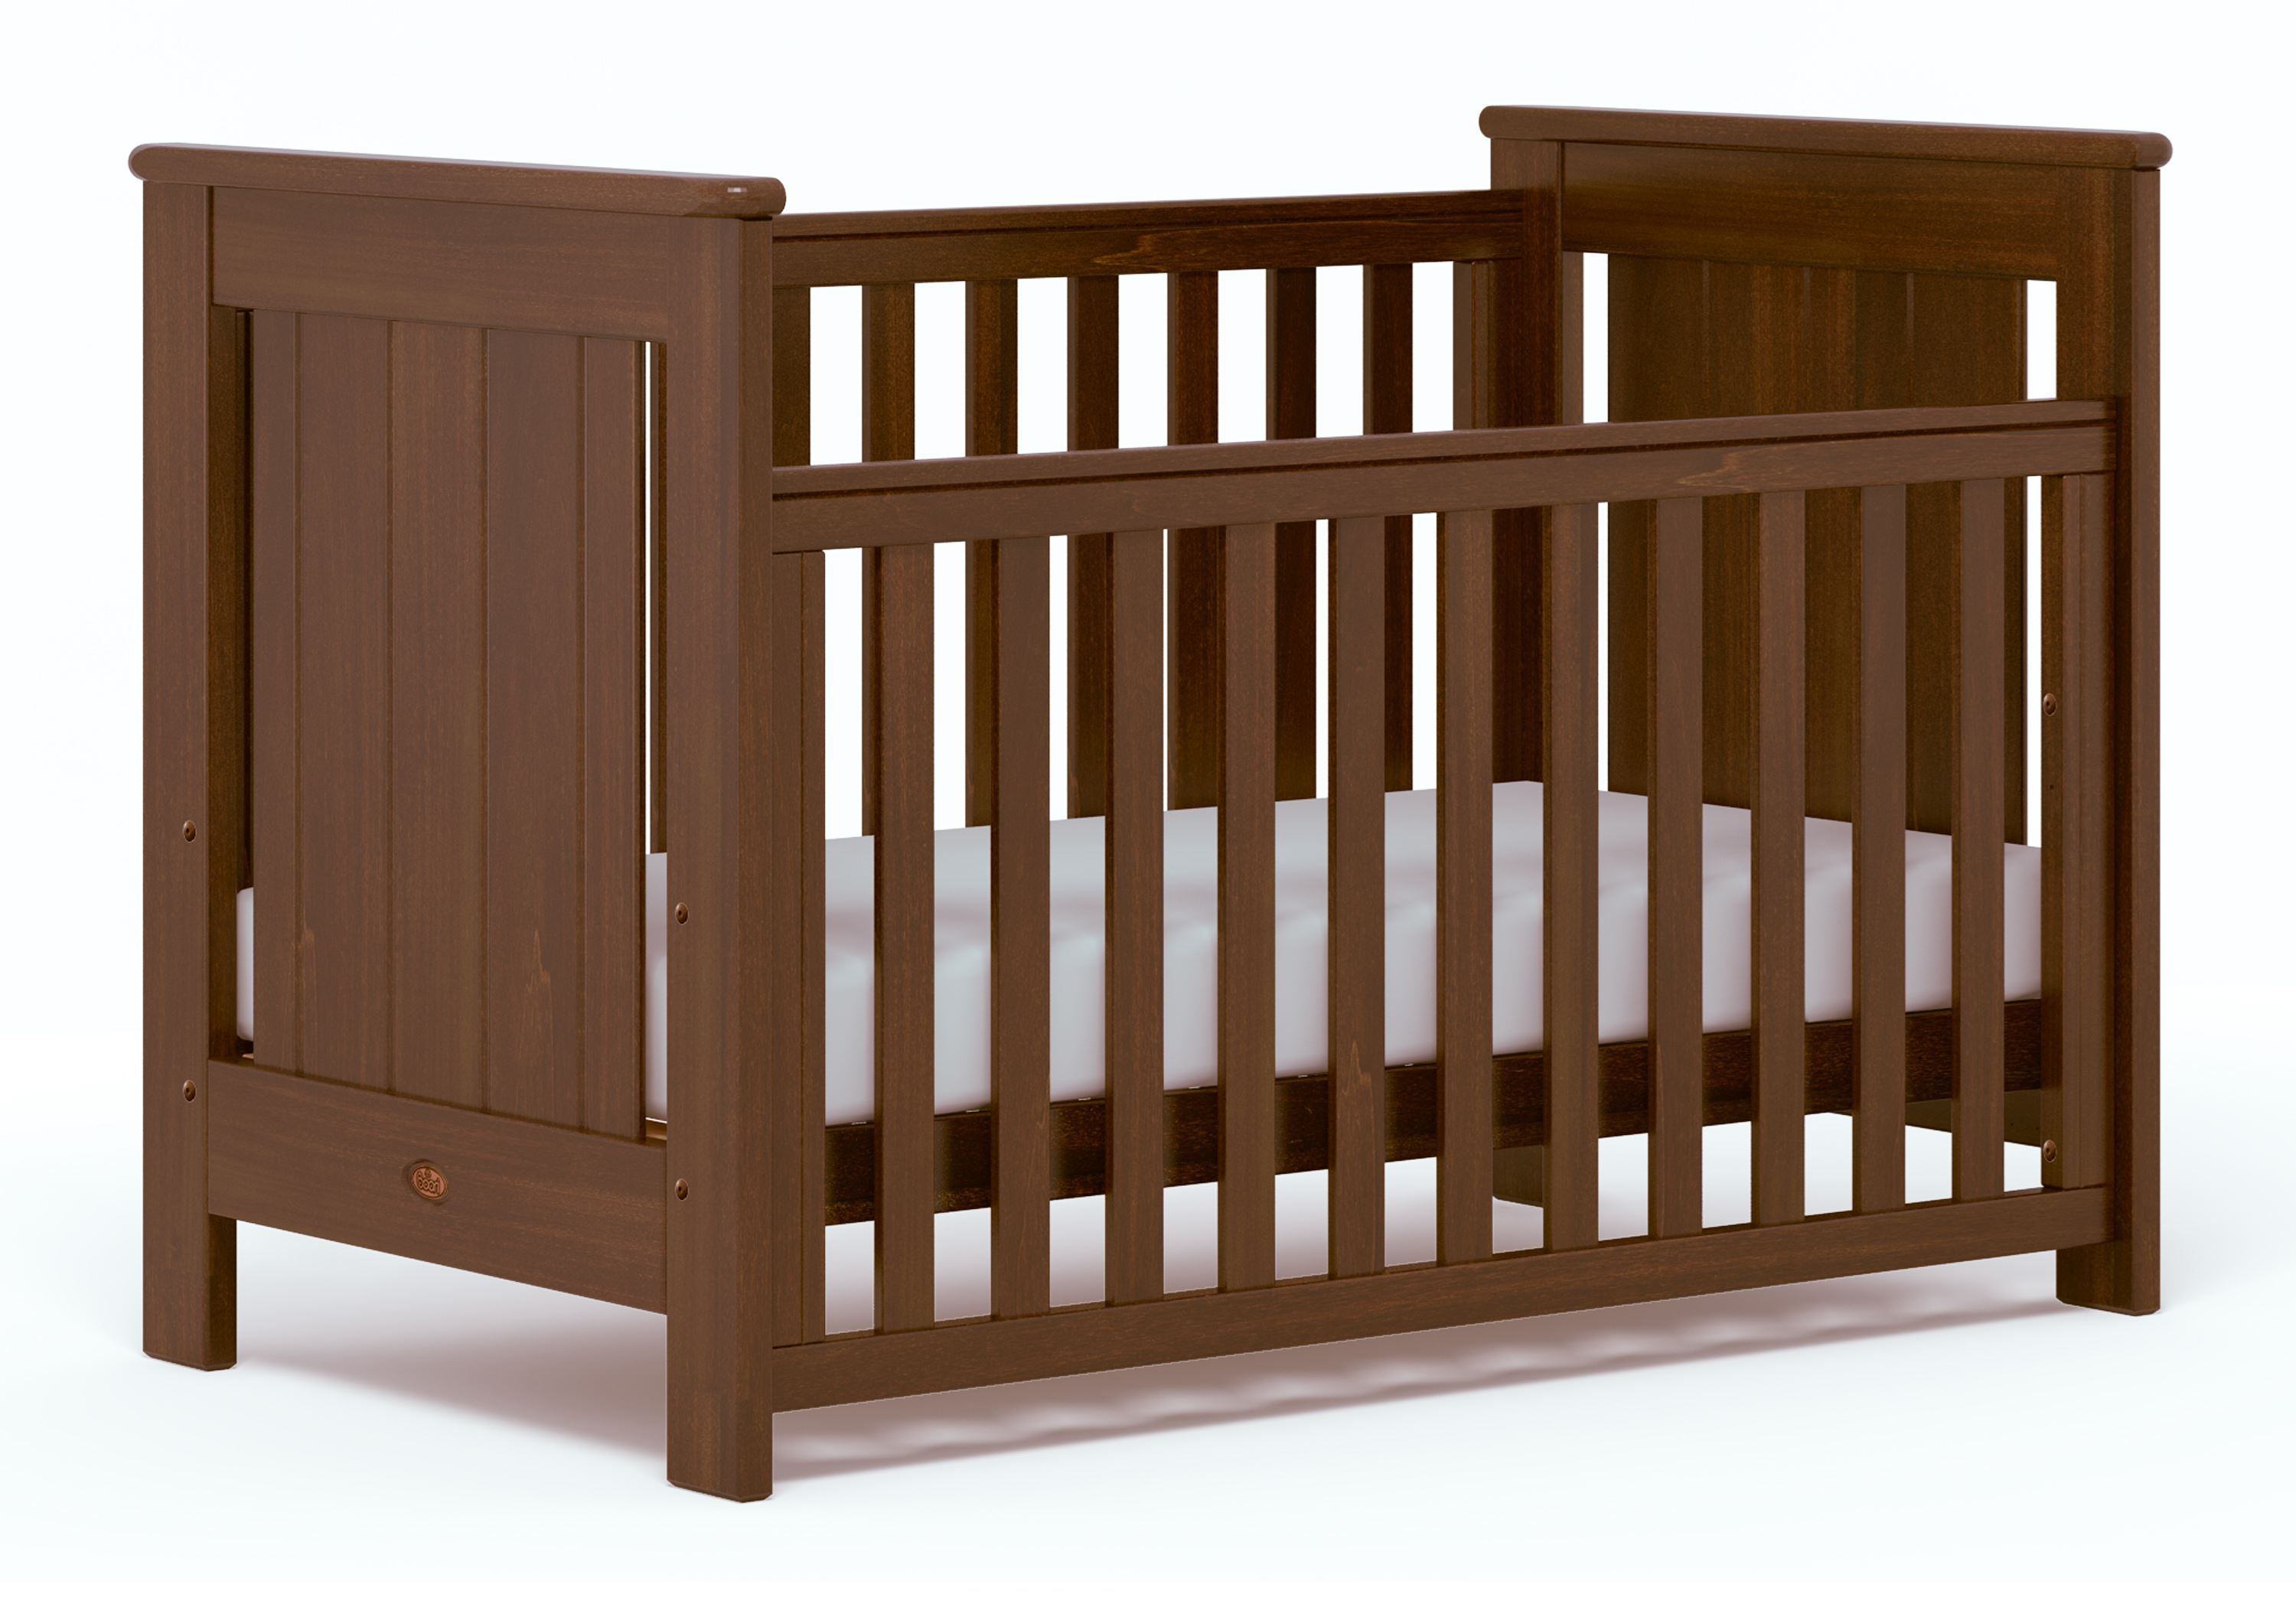 Boori Plaza Cot Bed | Baby Furniture Perth | Babyroad